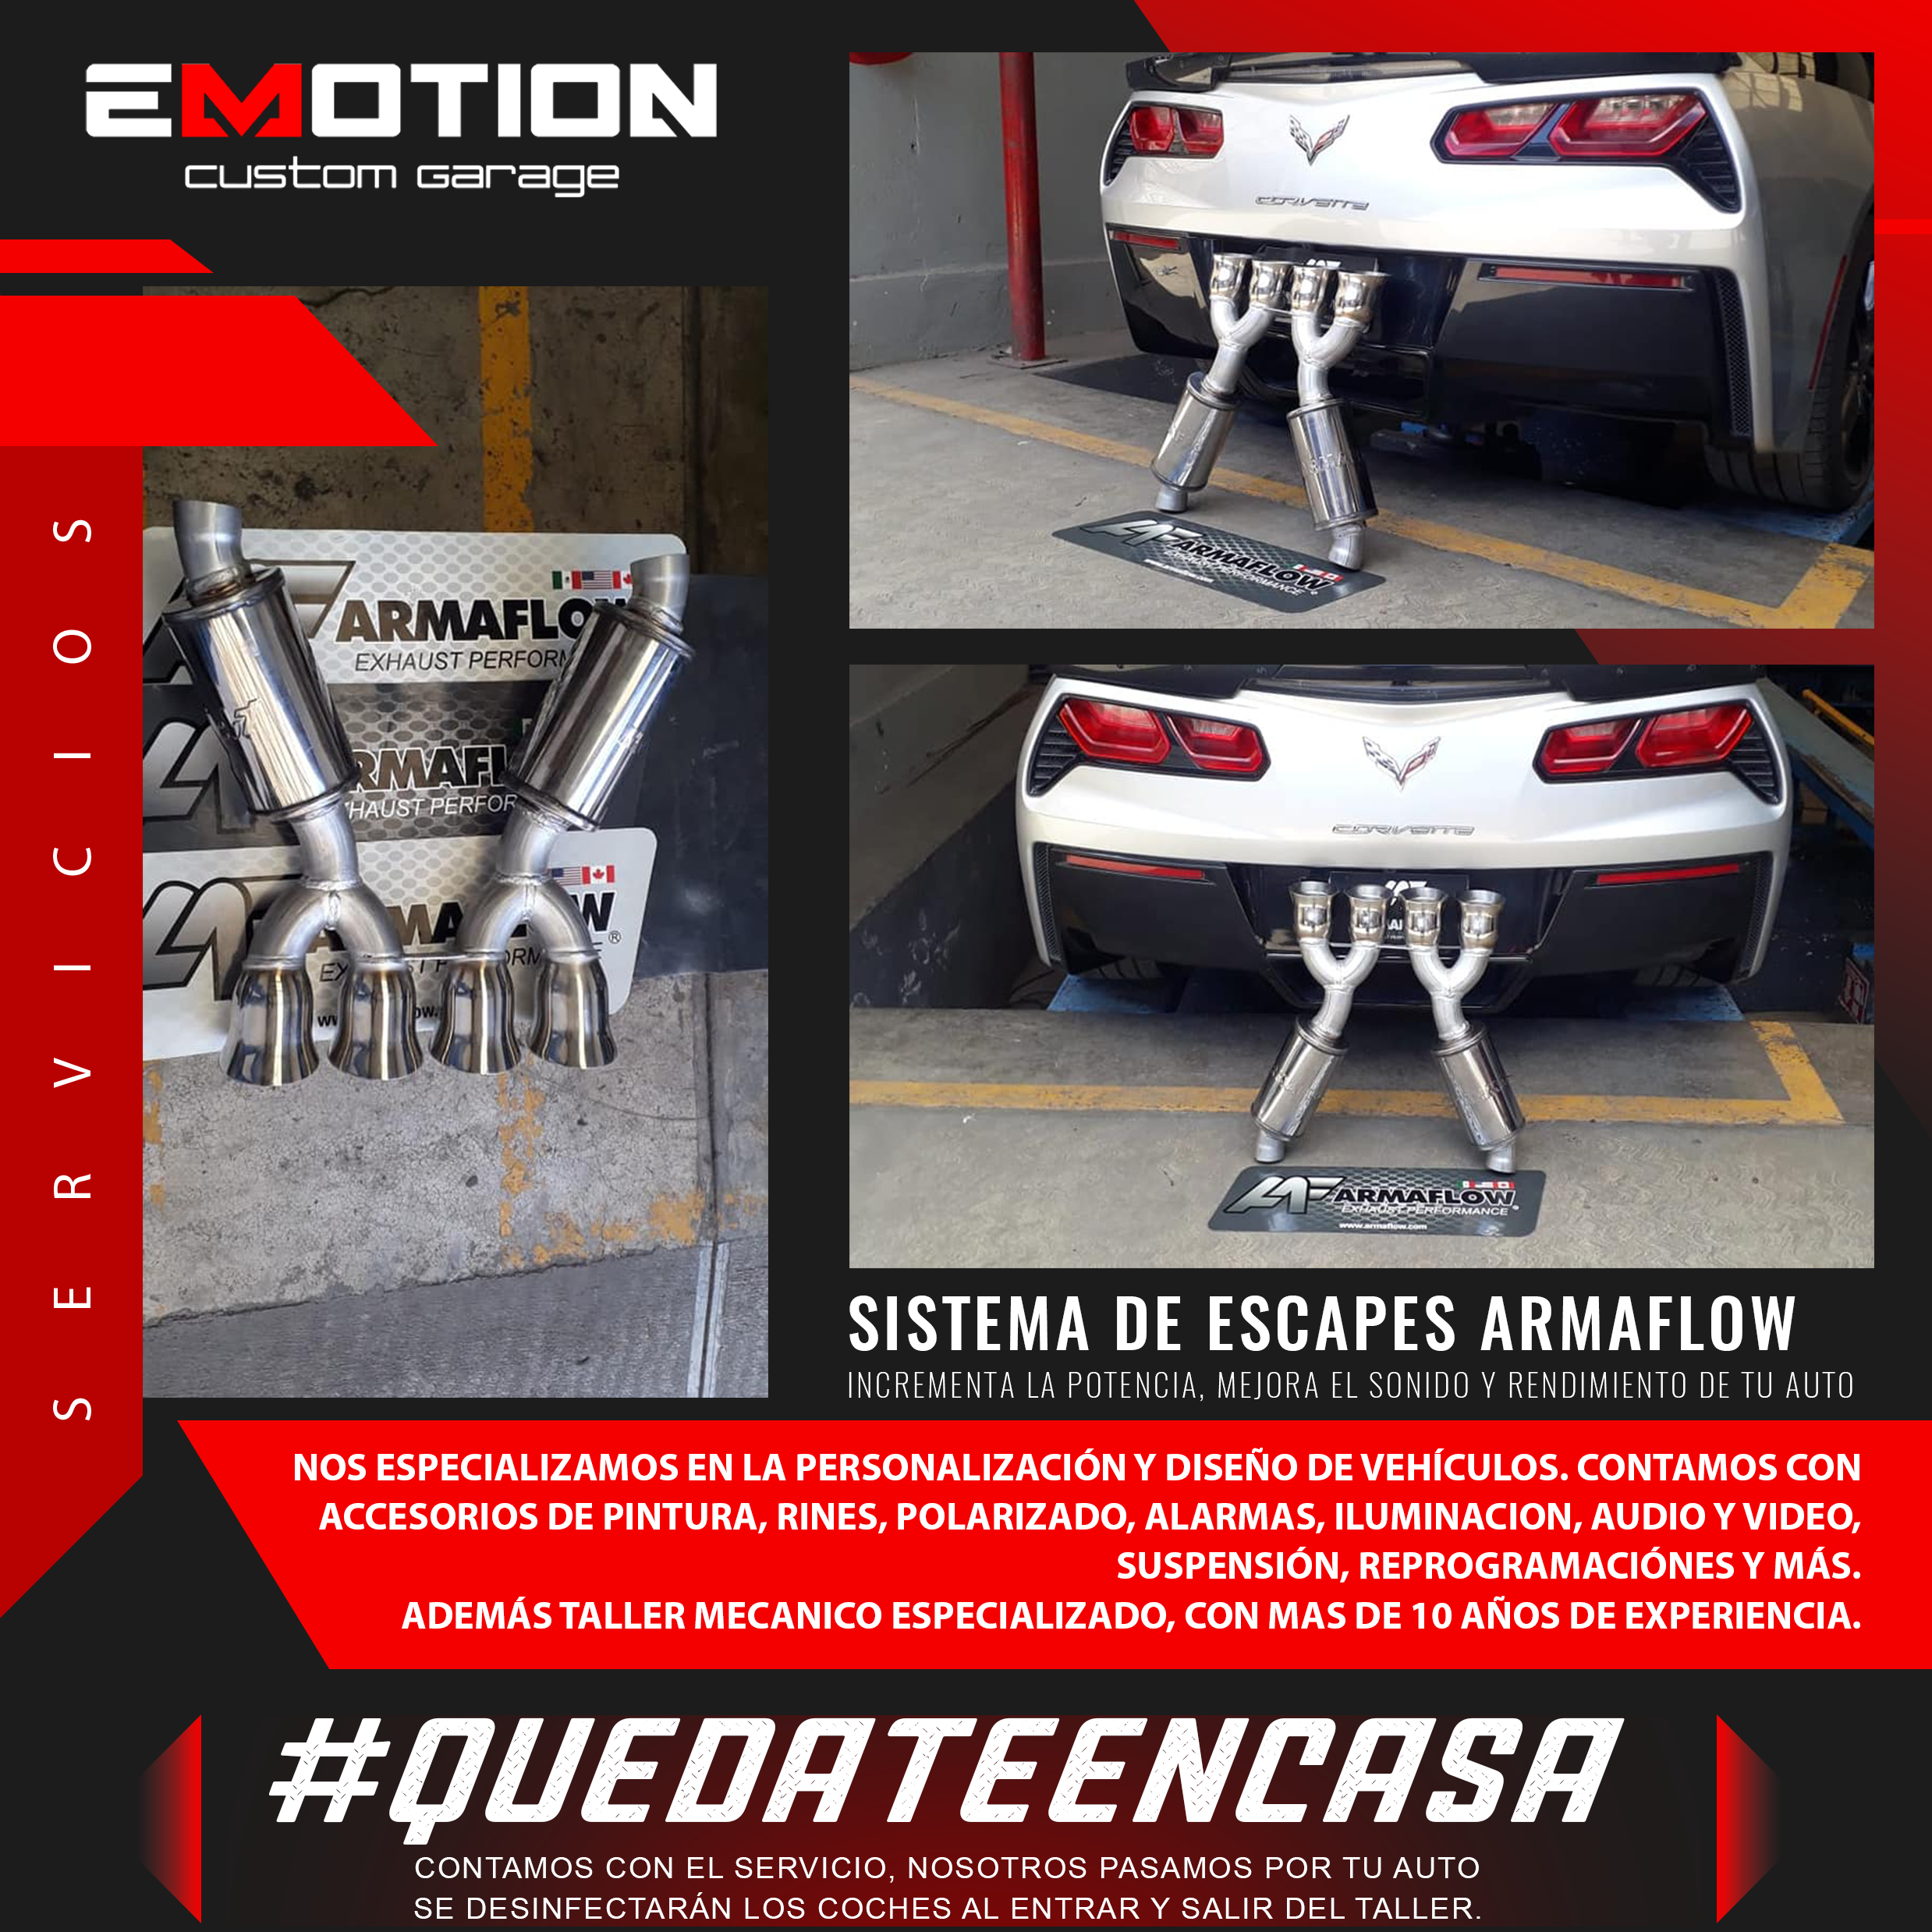 Emotion Custom Garage